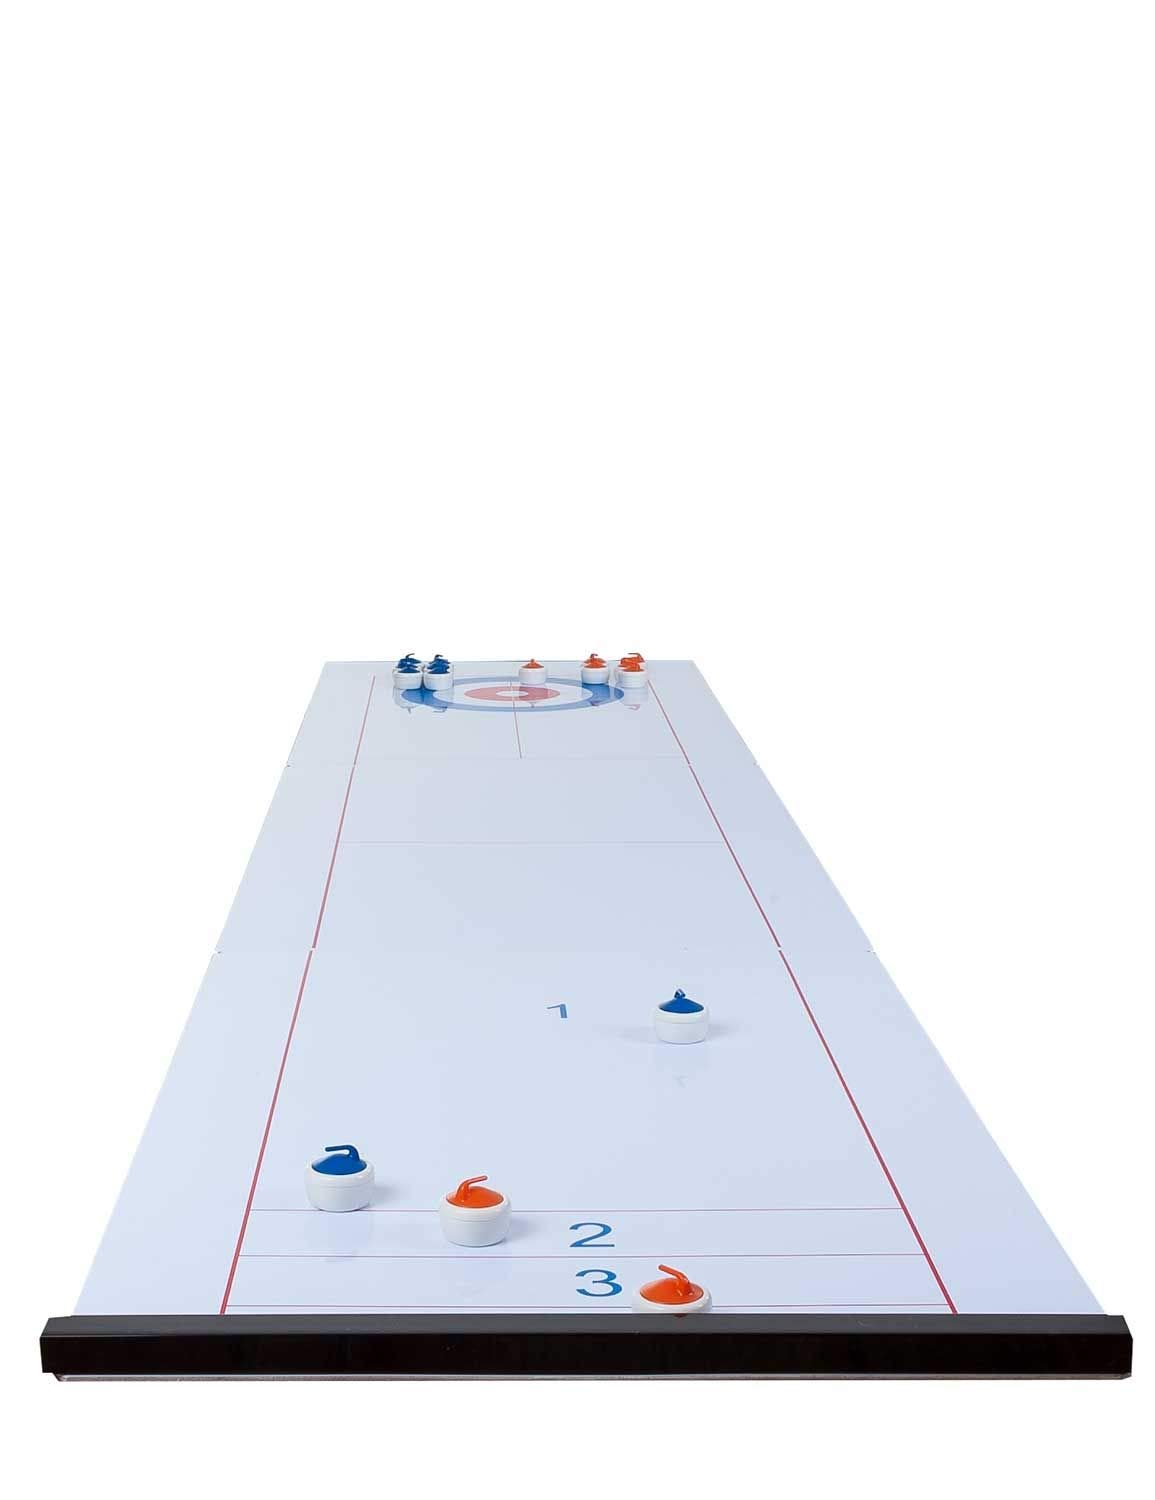 2 in 1 Curling and Shuffleboard Table-Top Game - 180cm Engelhart